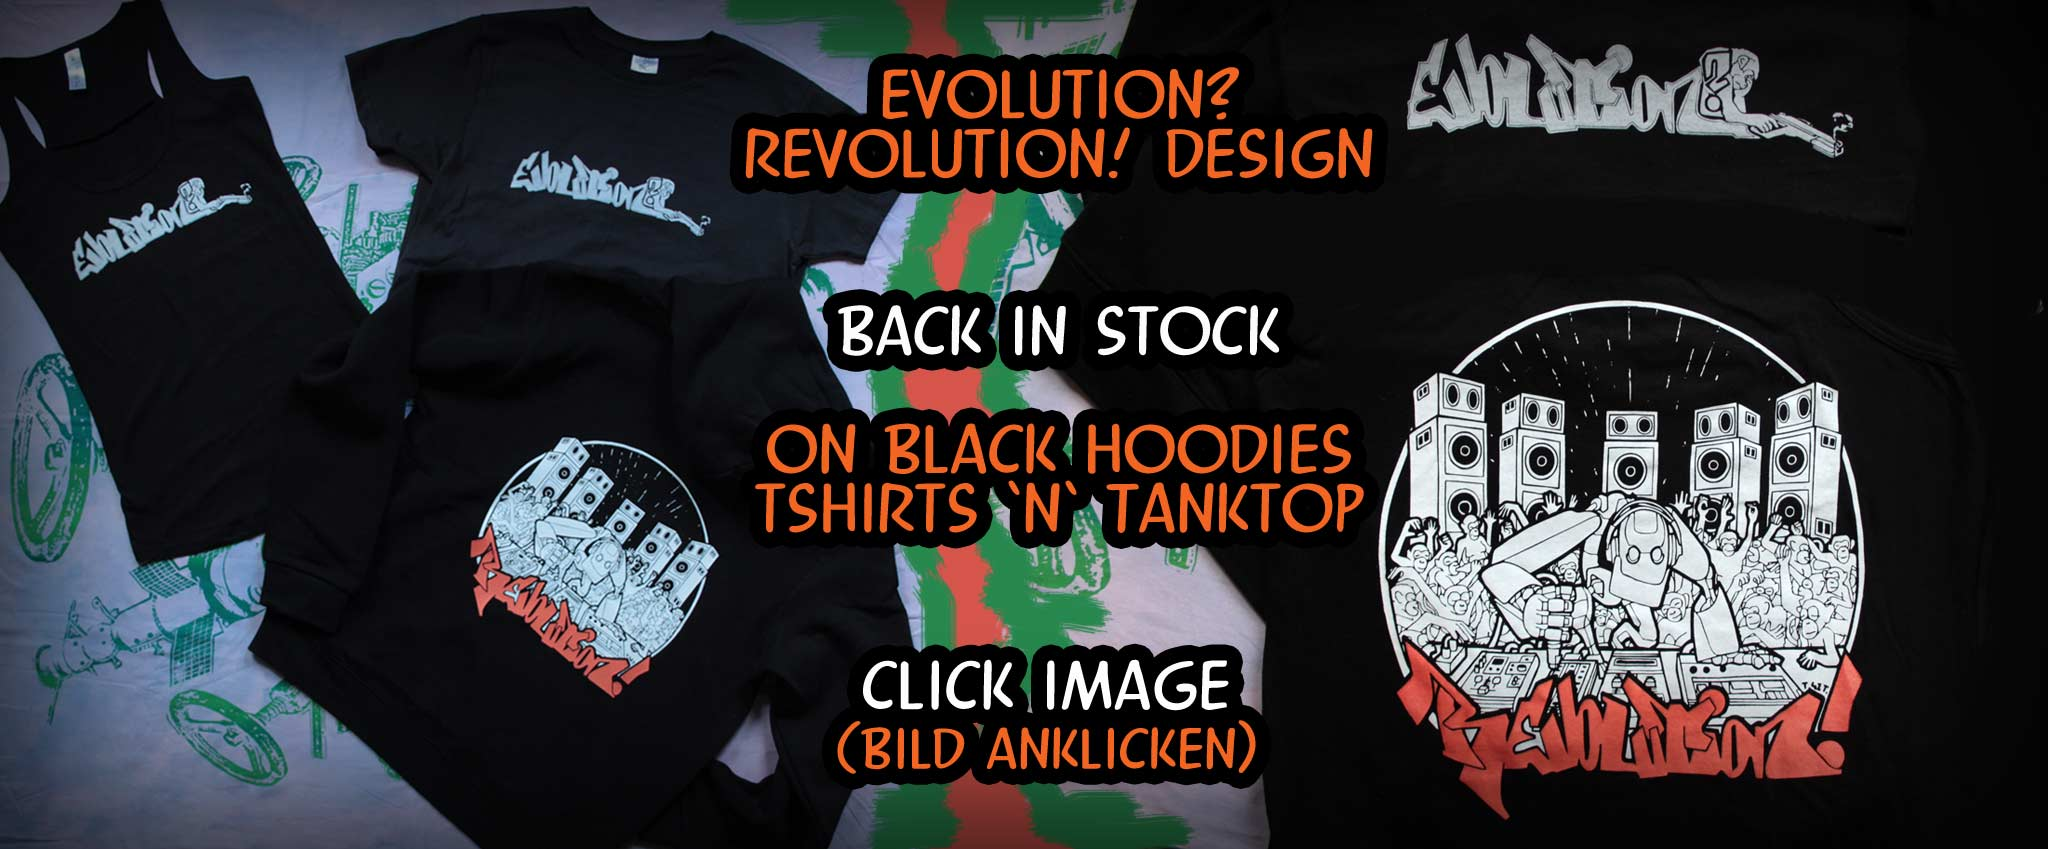 Evolution Revolution Tshirt Tanktop Hoody Back in stock